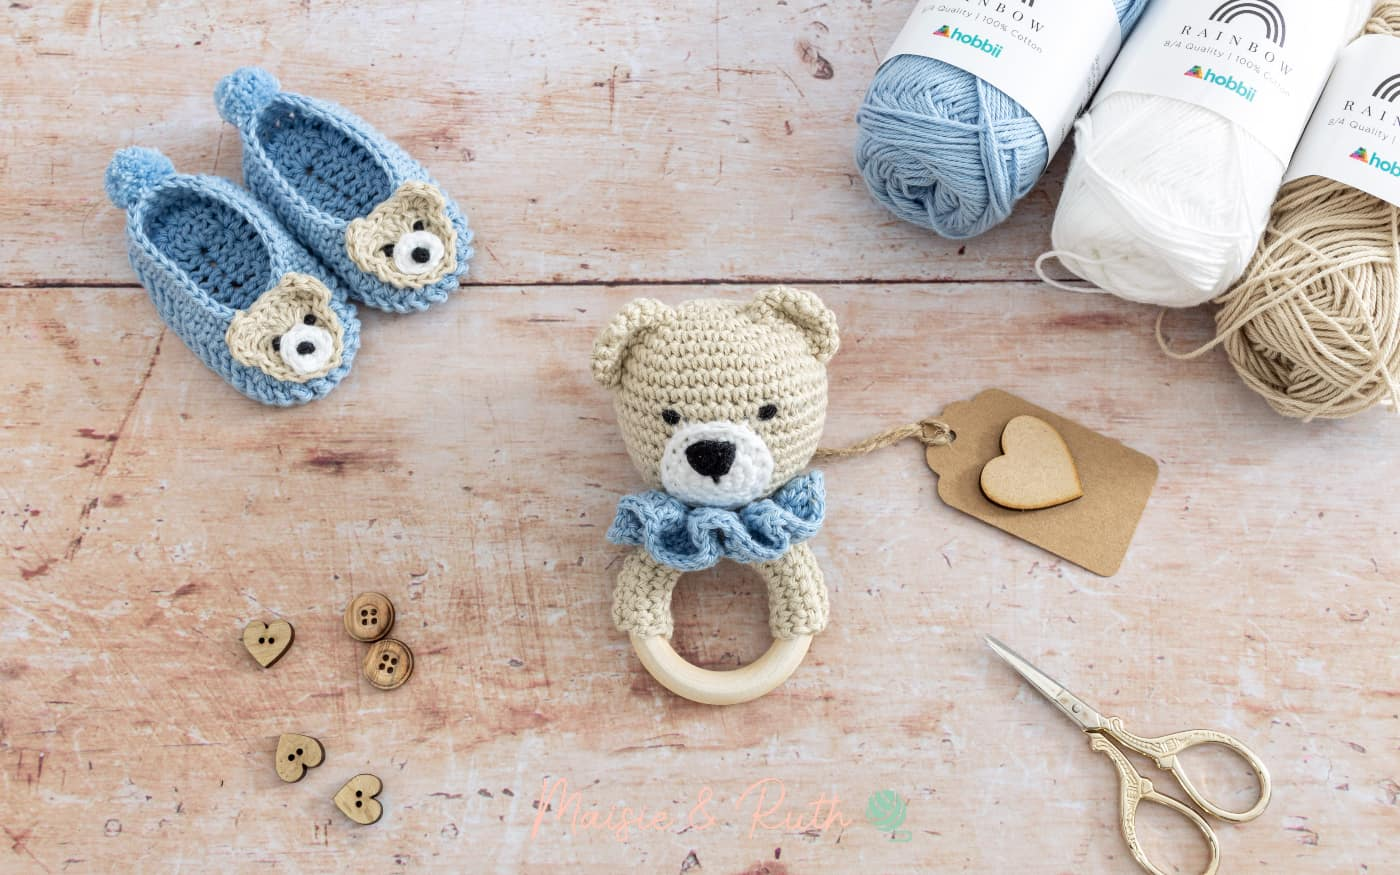 How to Crochet a Baby Rattle